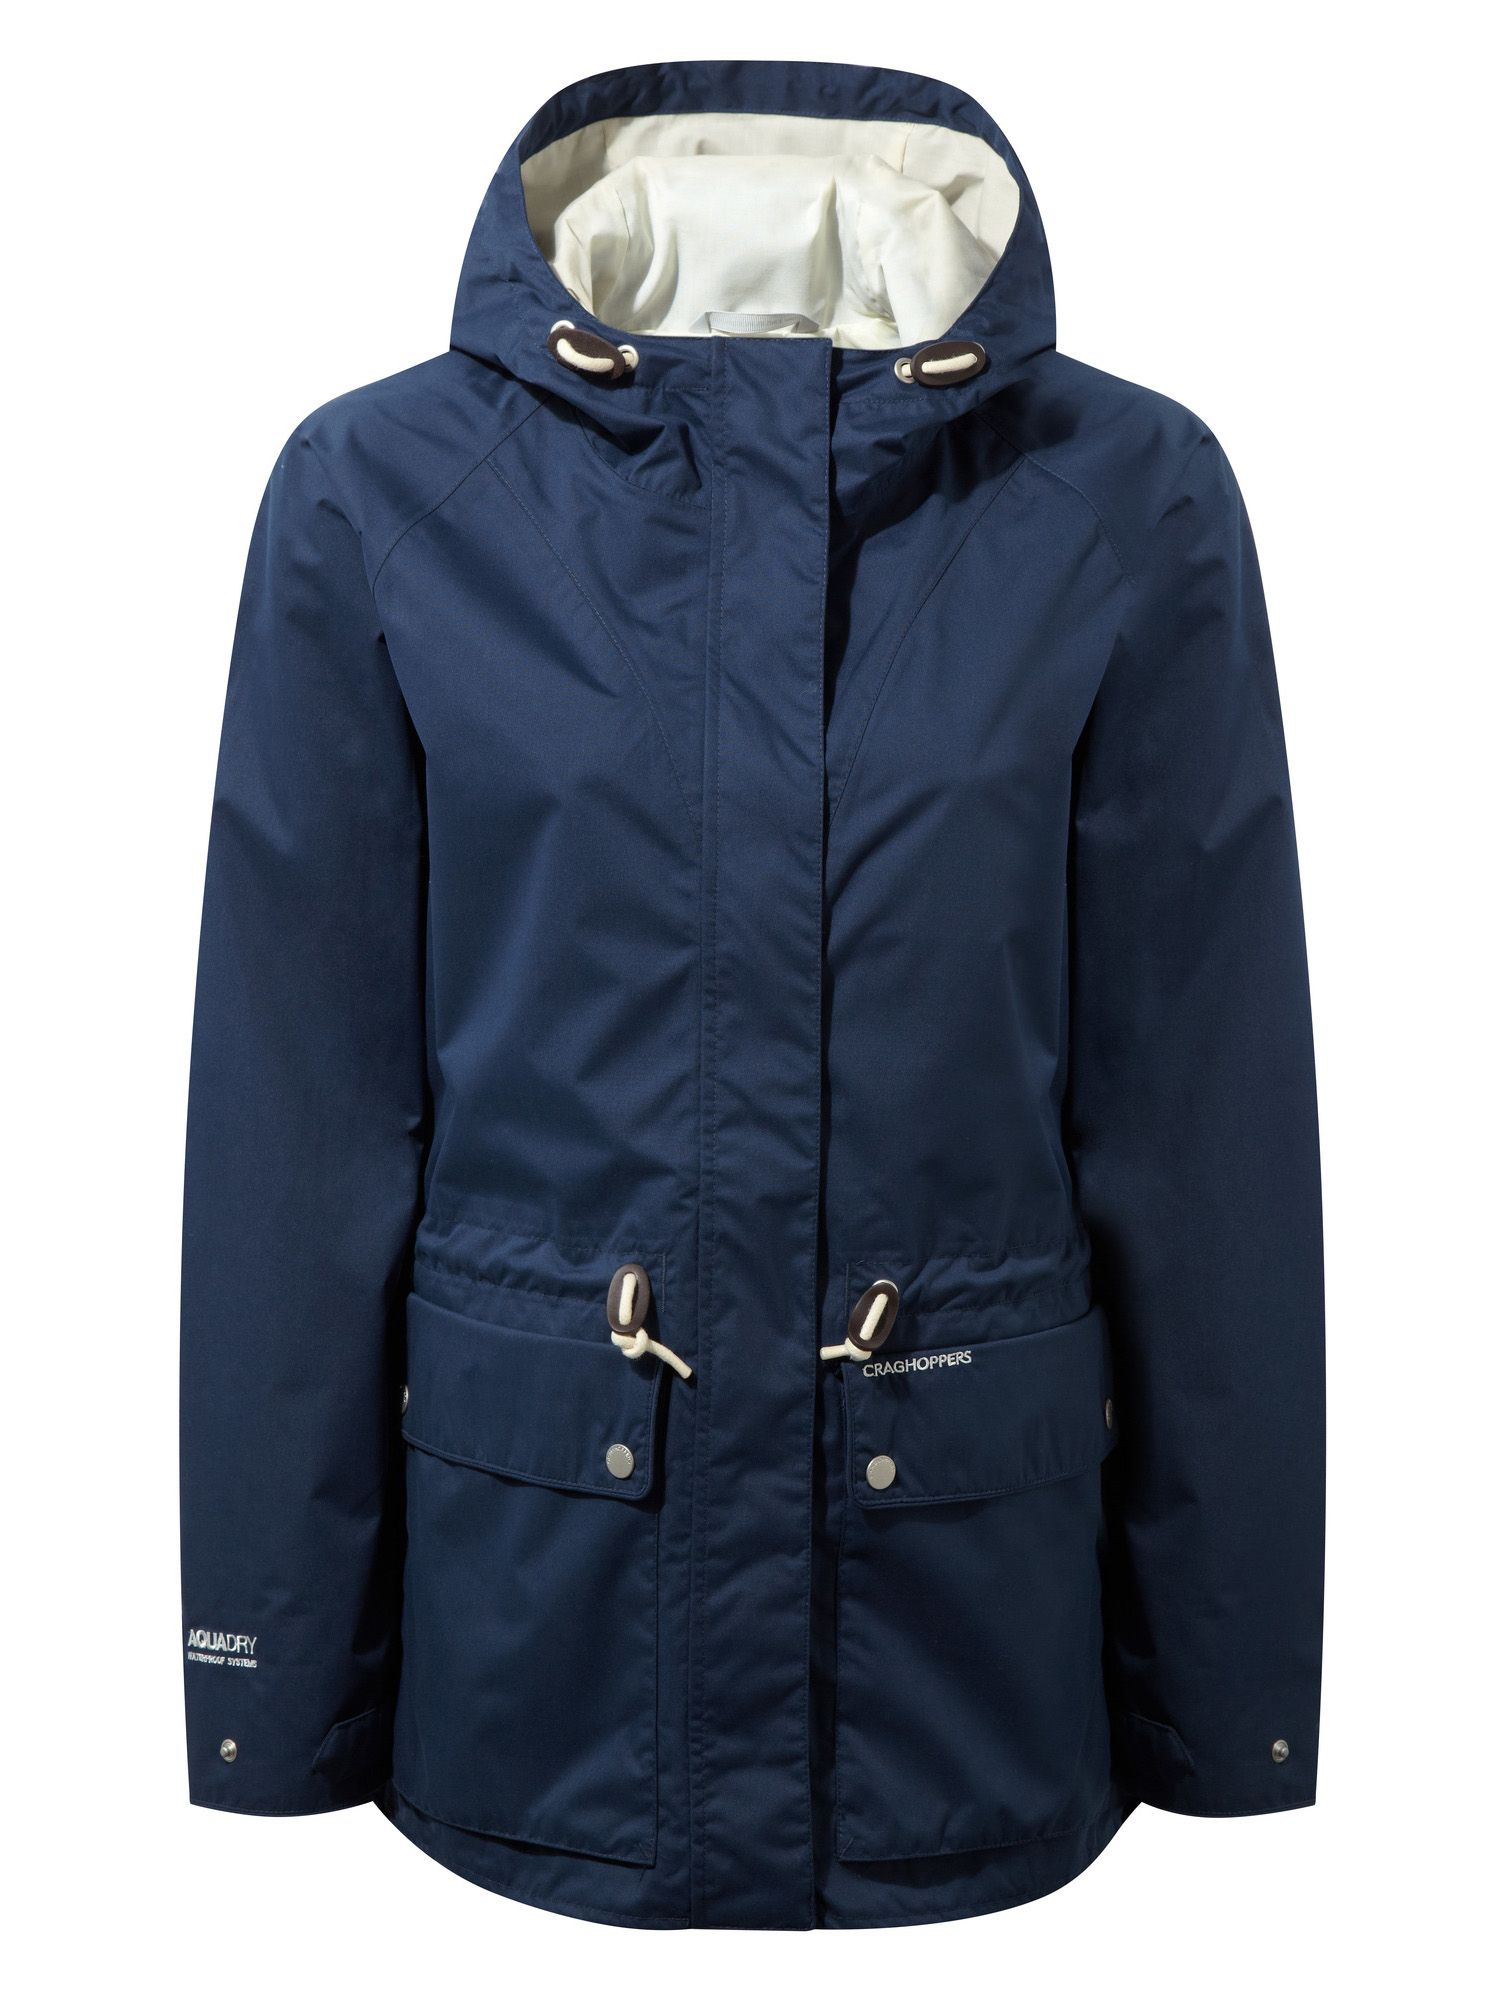 Craghoppers Esme Jacket, Blue